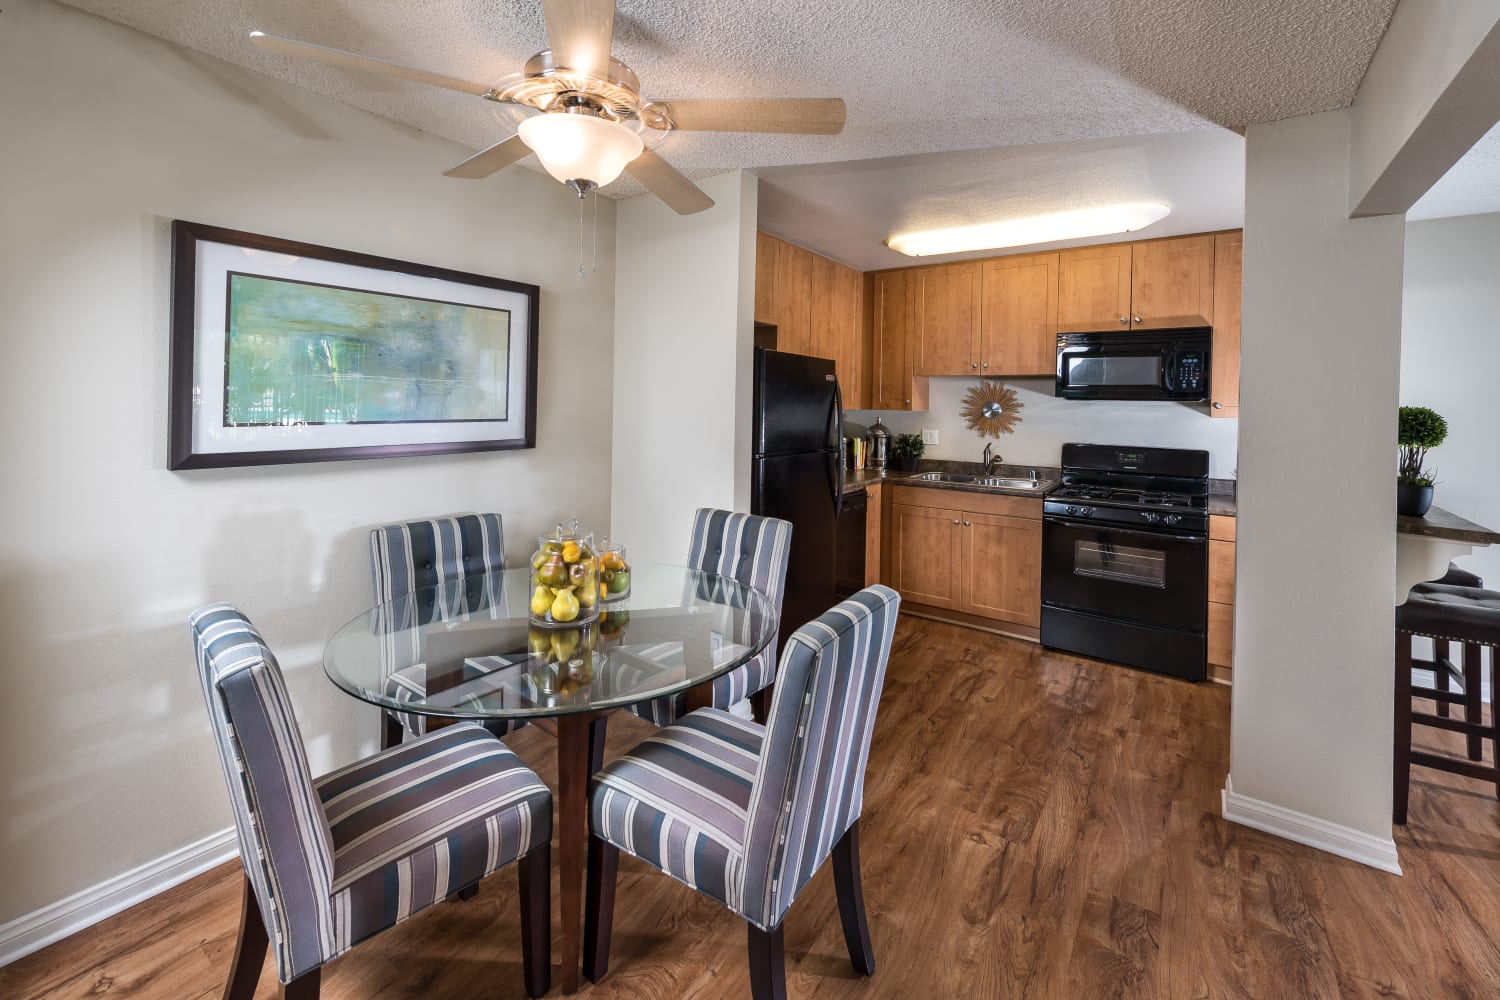 UCE Apartment Homes in Fullerton, California, offers open dining room floor plans with hardwood floors and ceiling fans